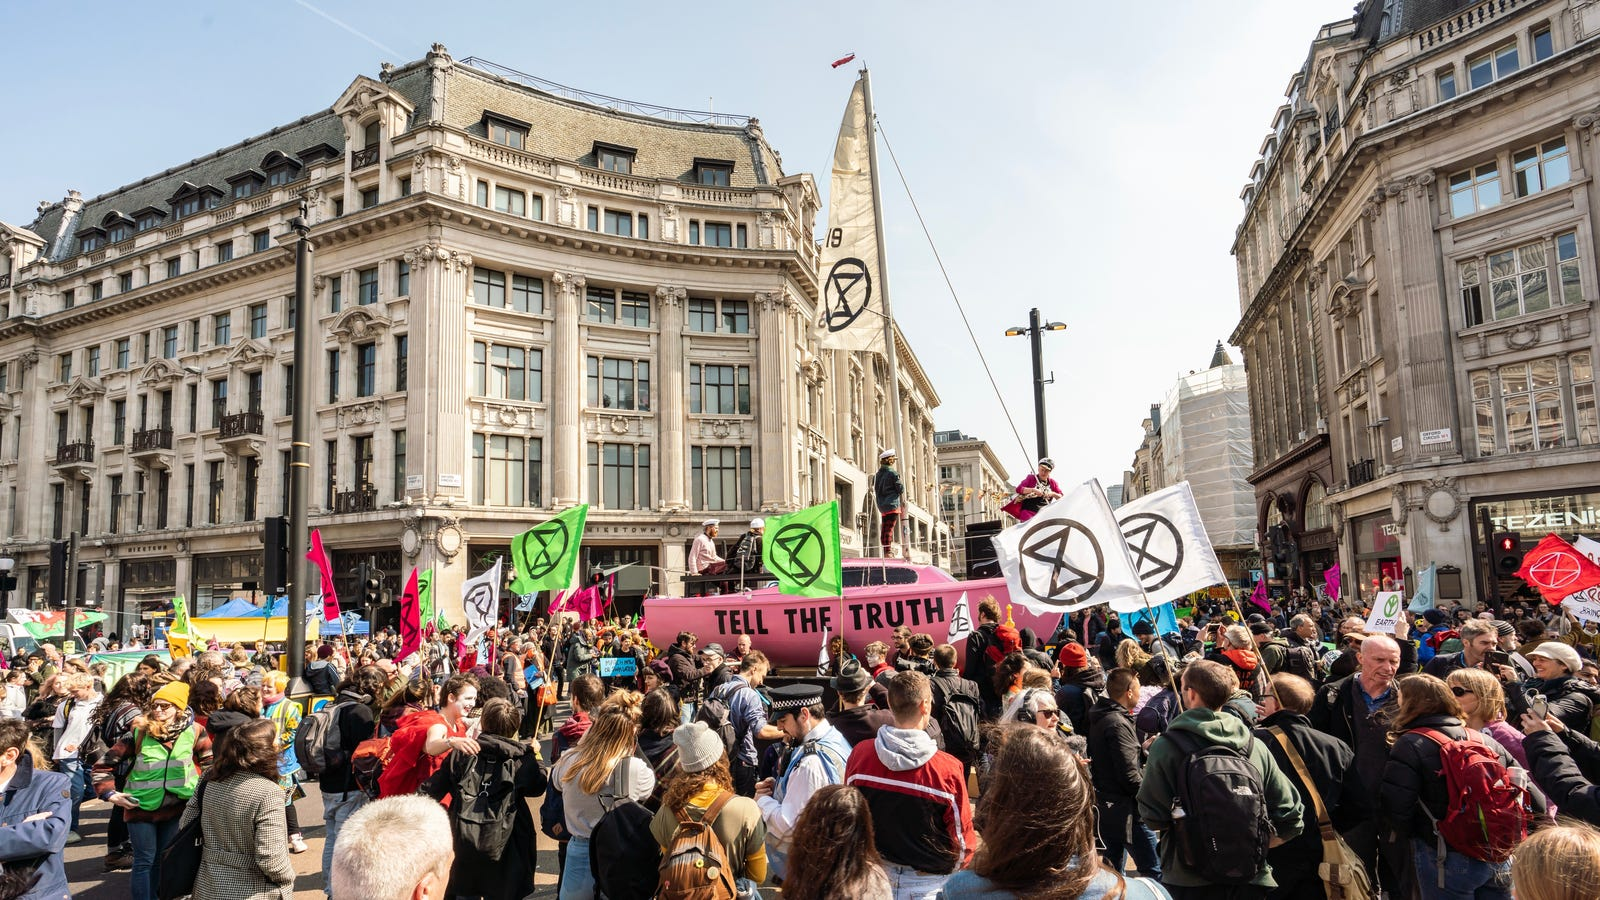 Extinction Rebellion Protesters Kick Off a Week of Global Climate Action by Shutting Down London